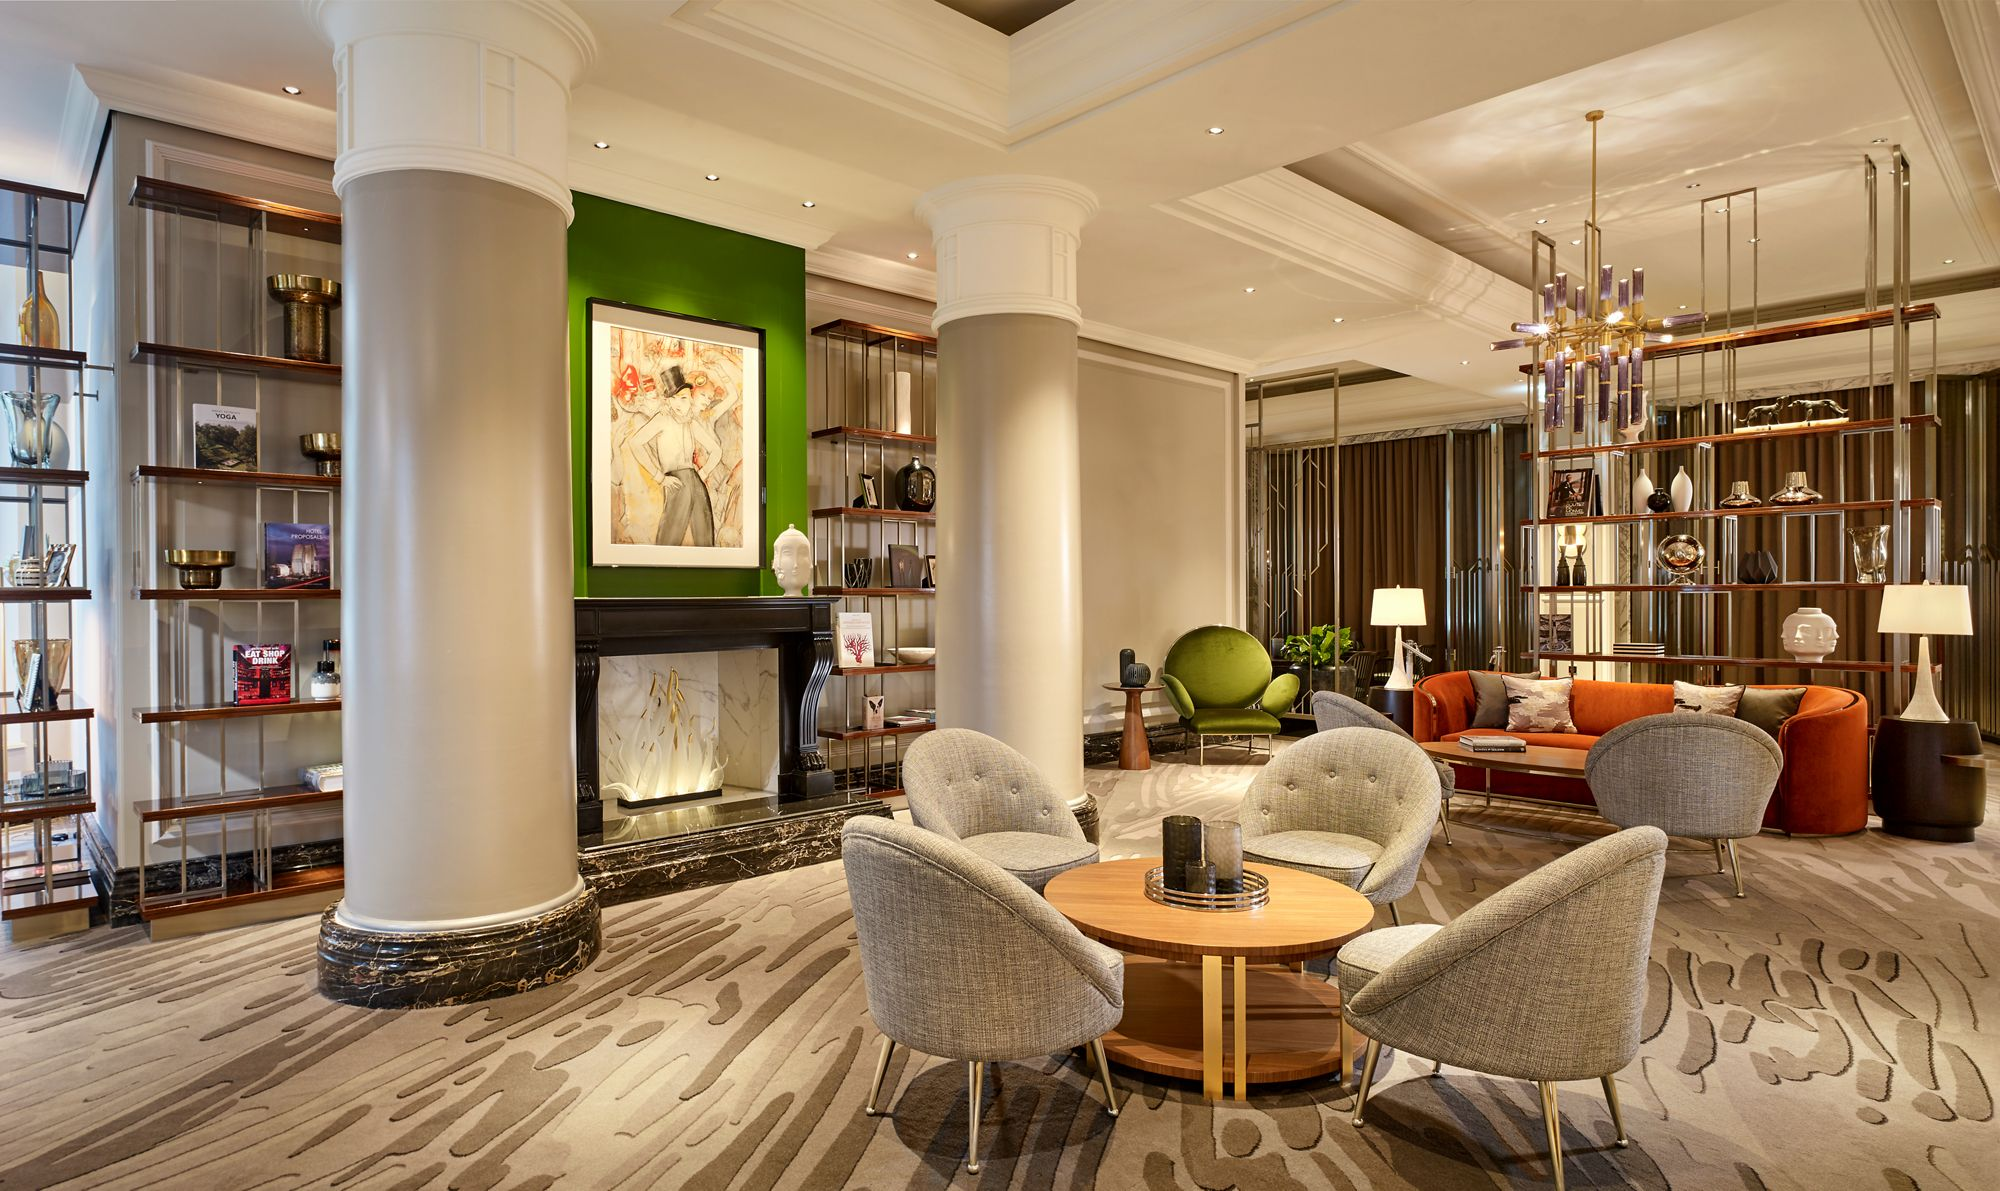 ritz-carlton_berlin_02